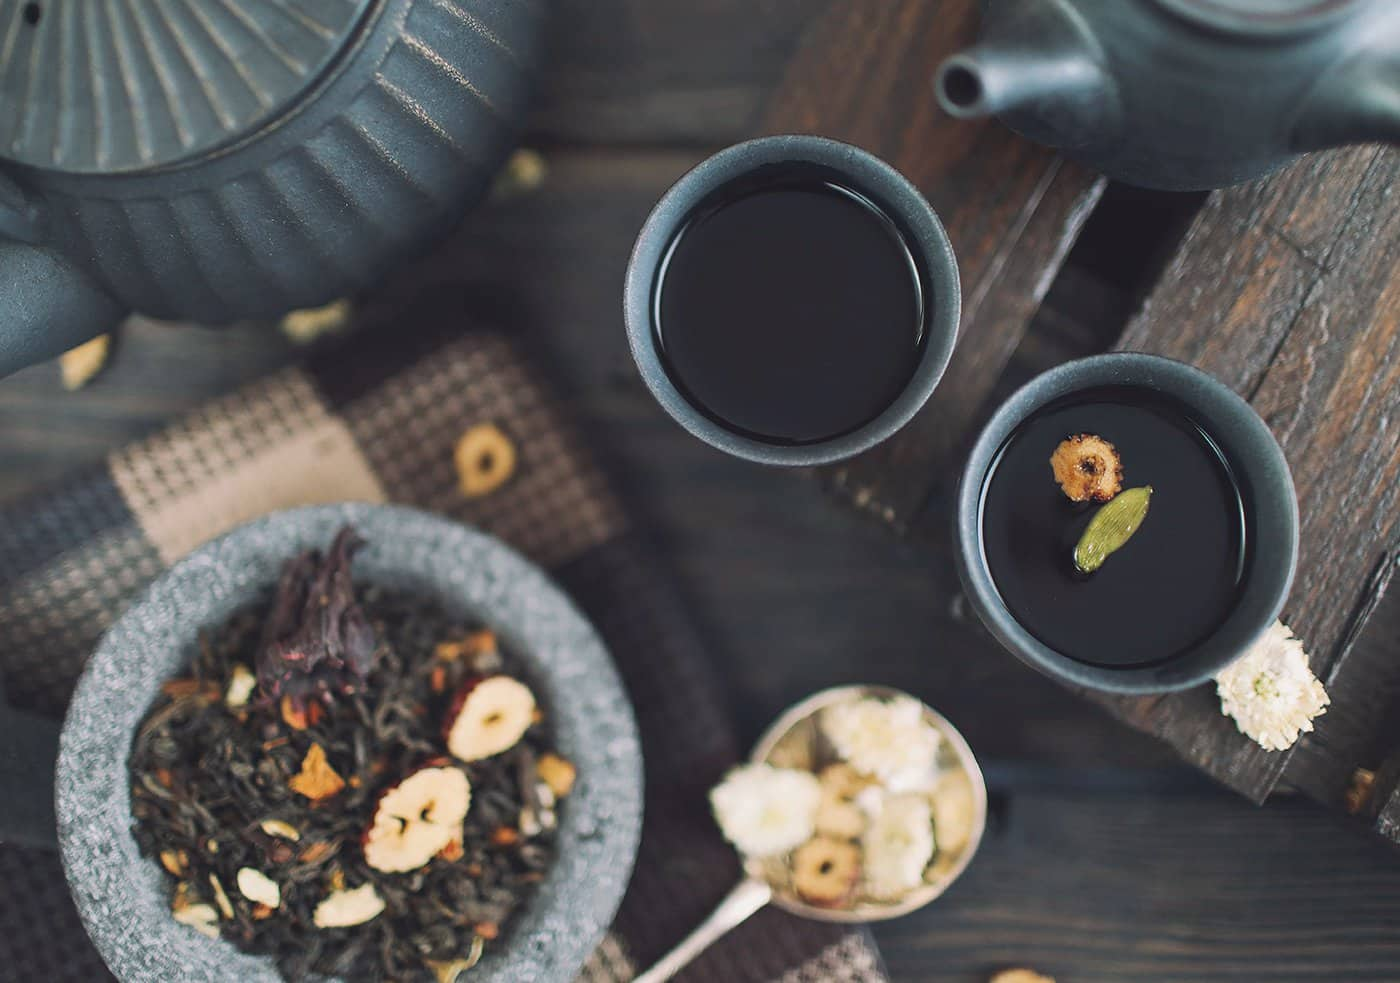 Traditions of the coffee ceremony